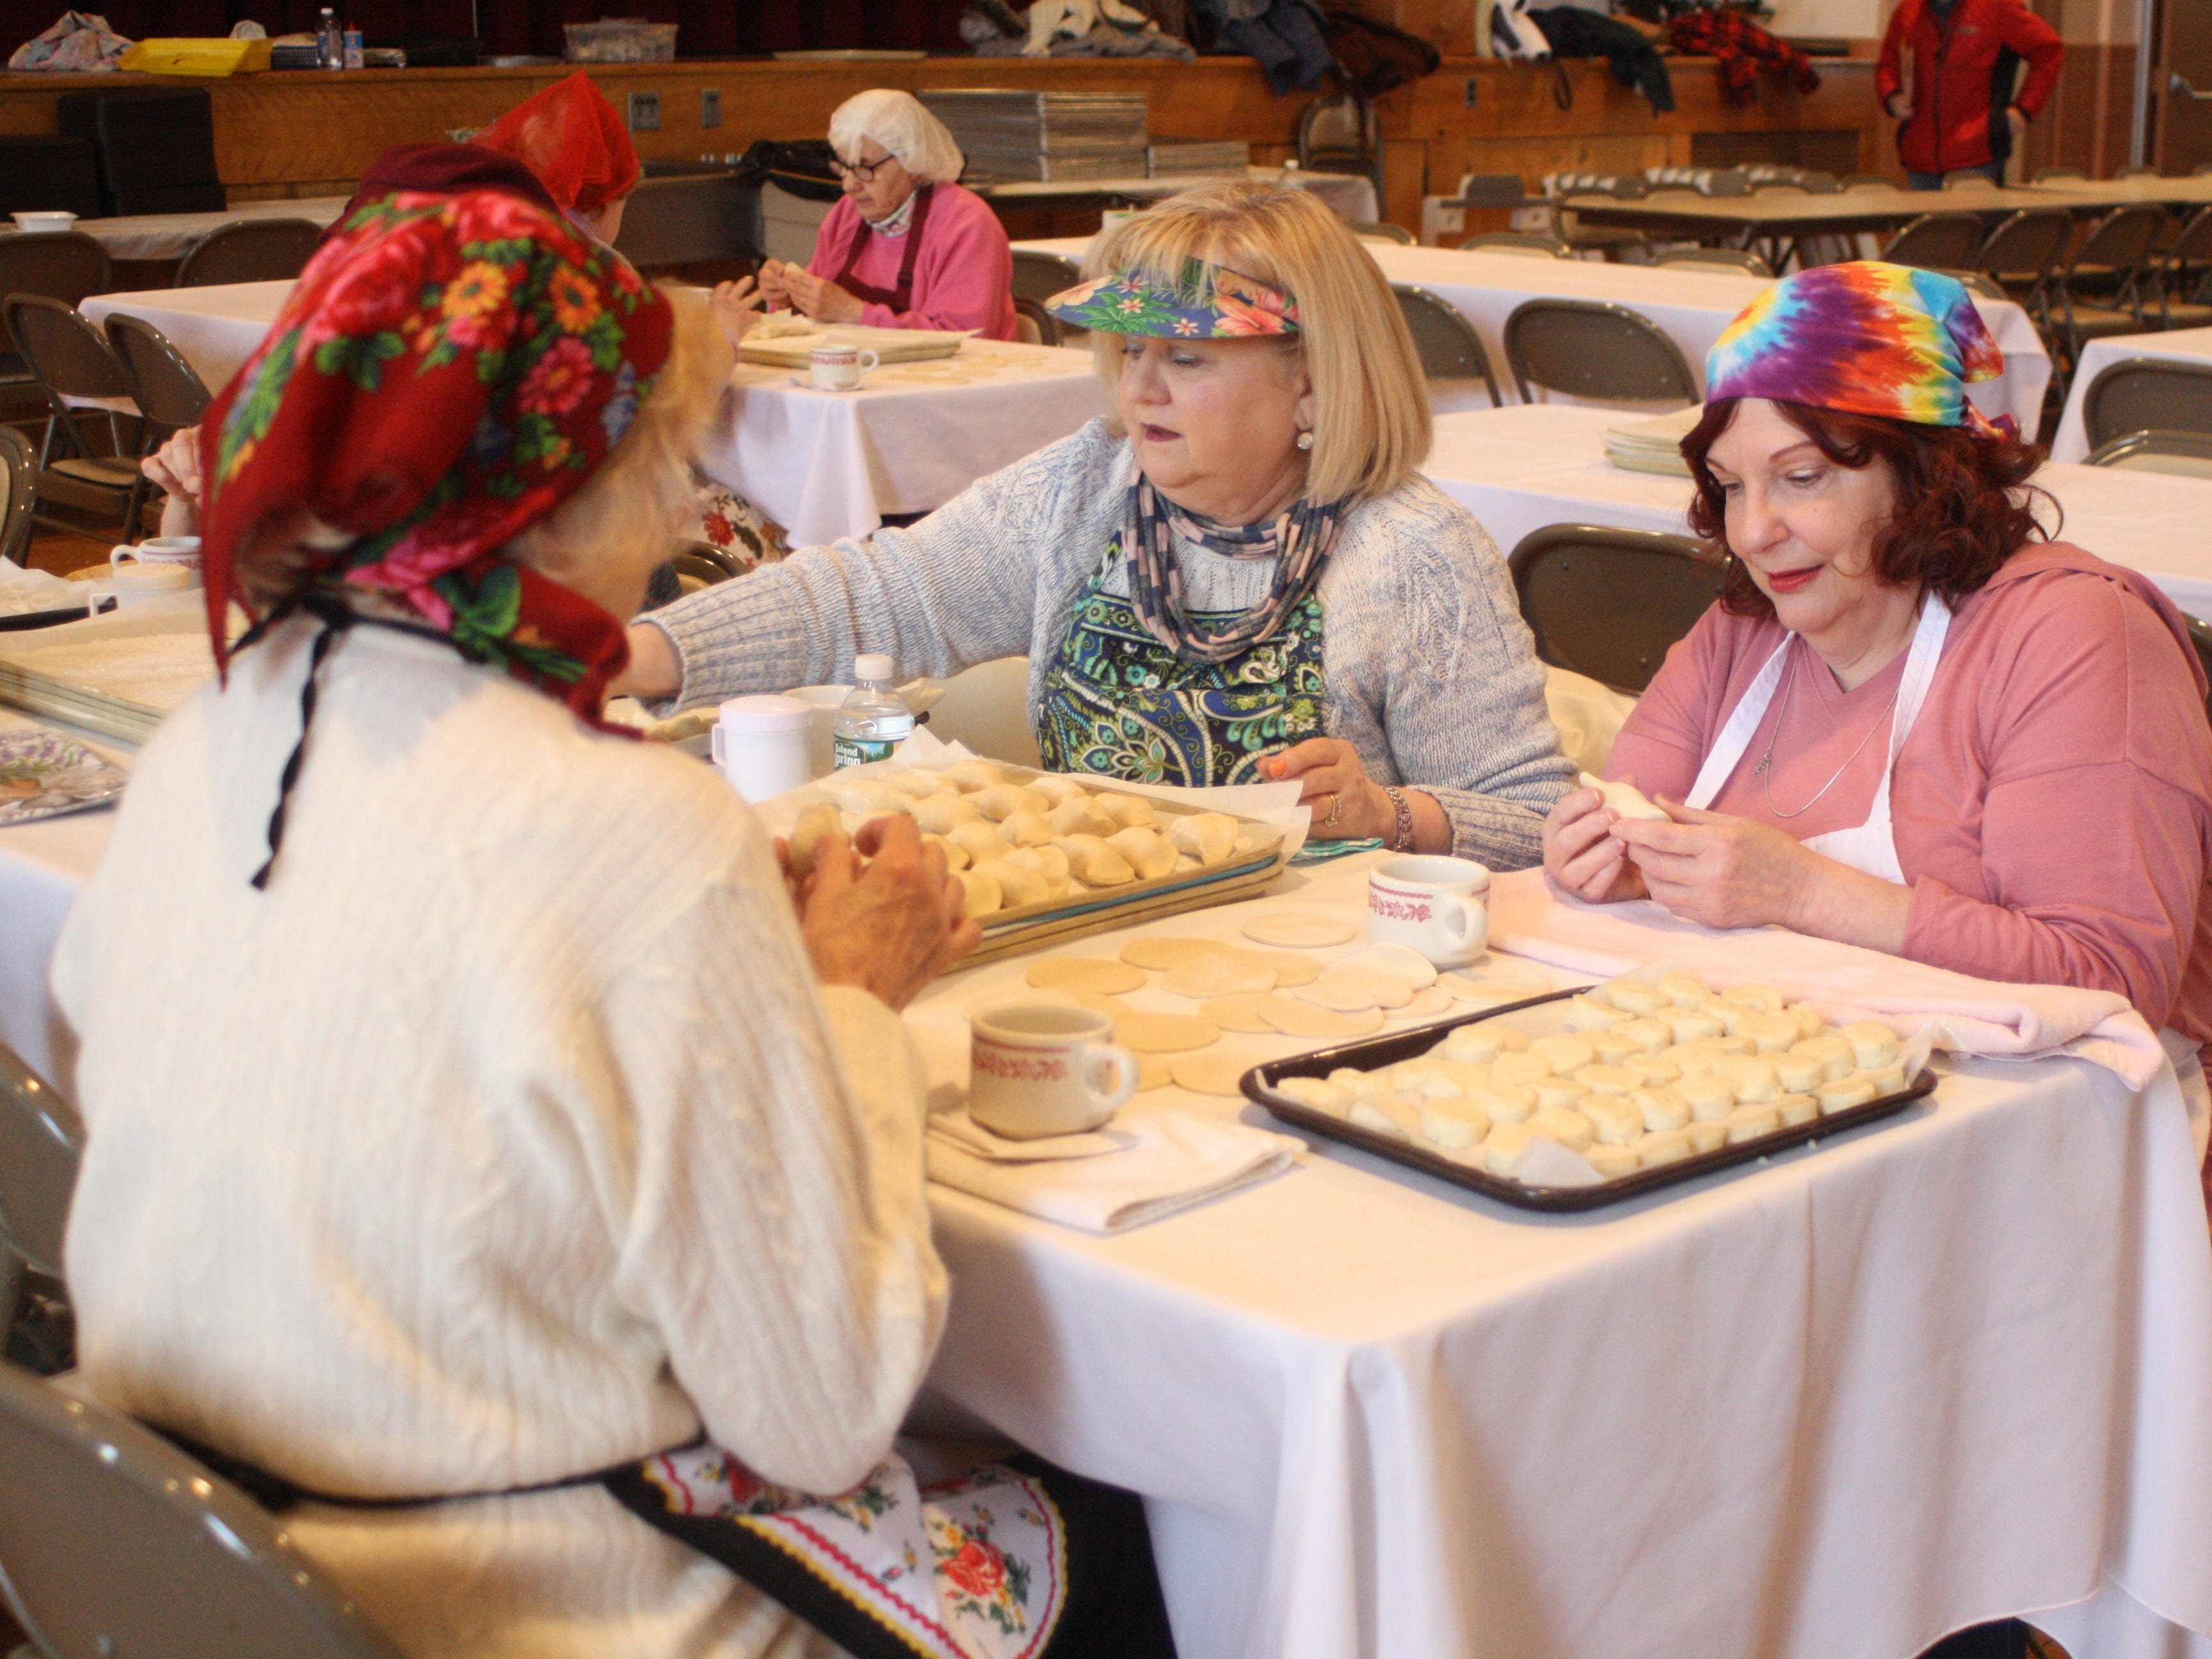 Volunteers prepared potato pirohis on March 7 at St. Michael's Church in Binghamton, the day before the first day of the church's 56th Annual Lenten Pirohi Sale.